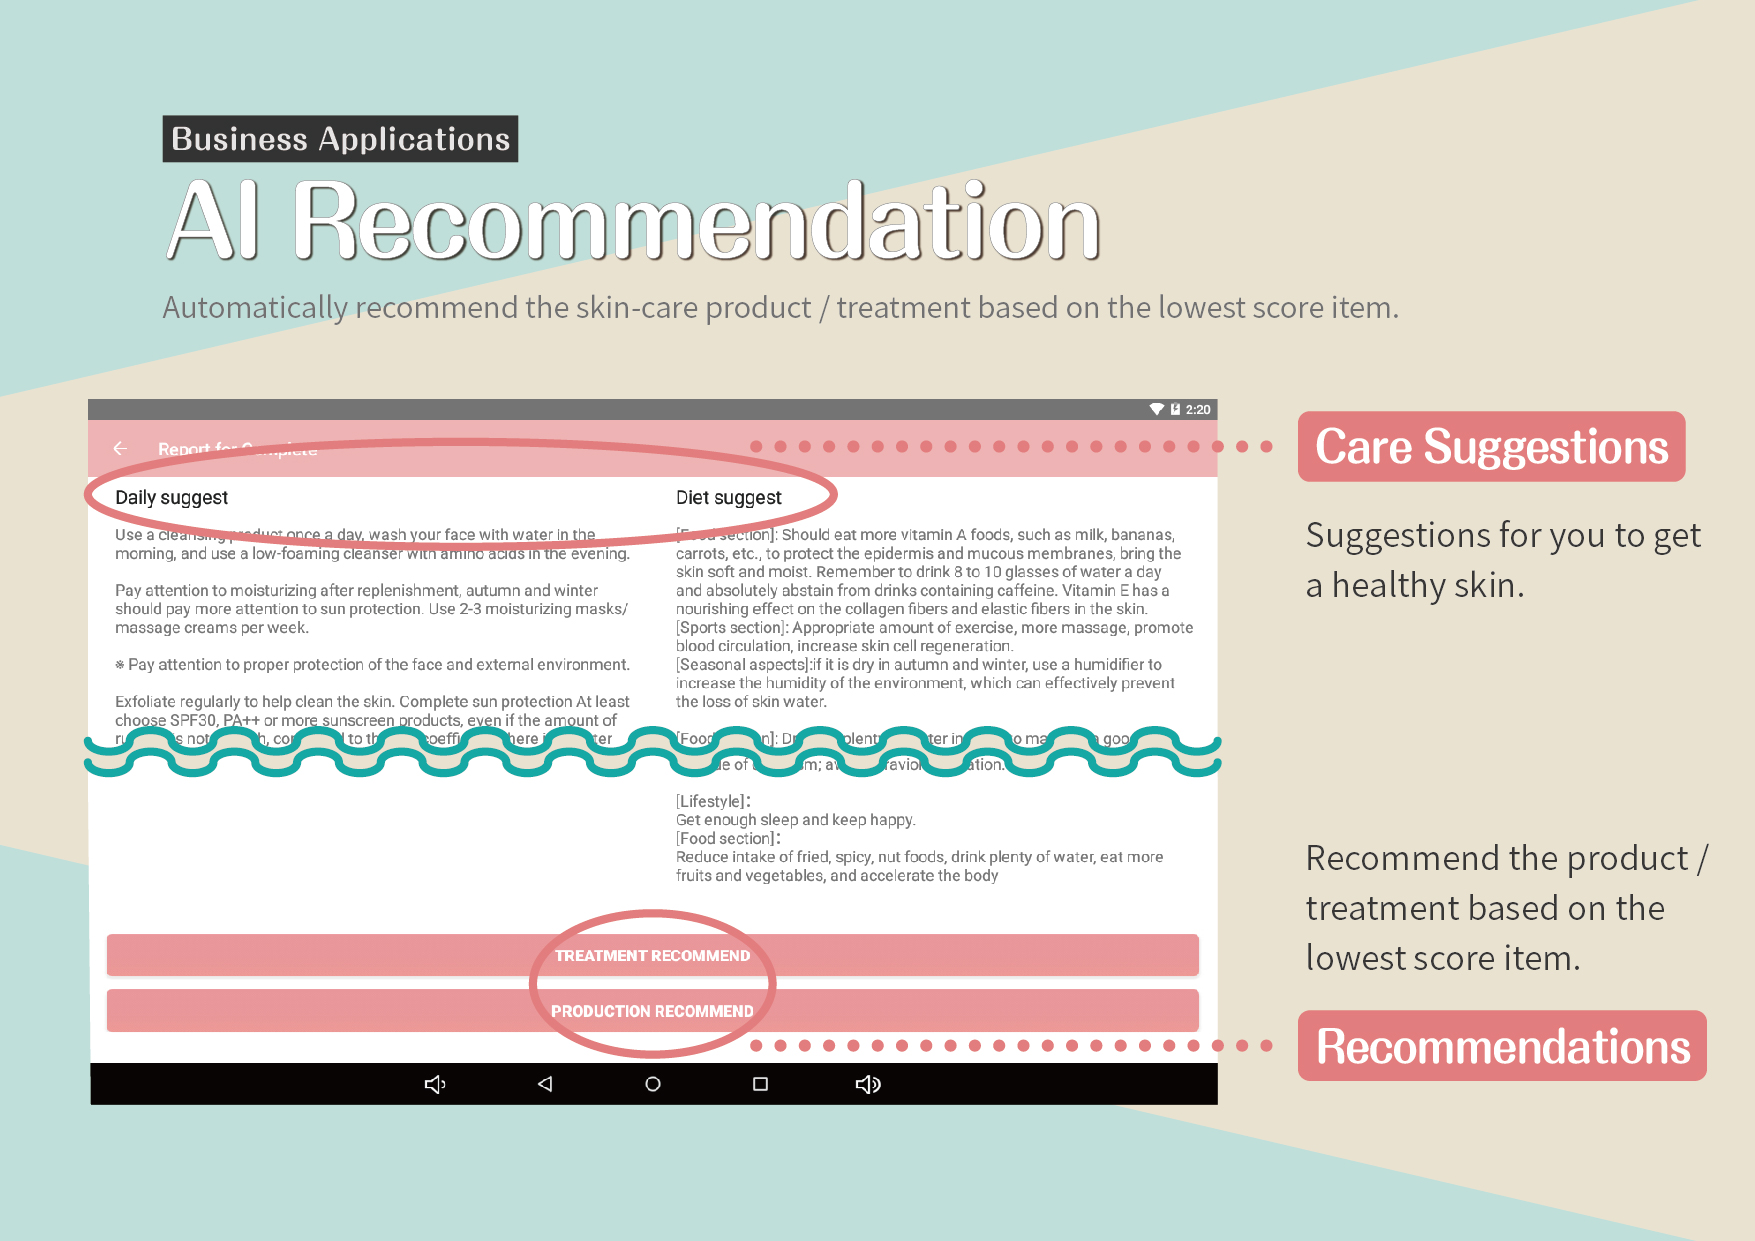 AI Recommendation: Automatically recommend the skin-care product / treatment based on the lowest score item.